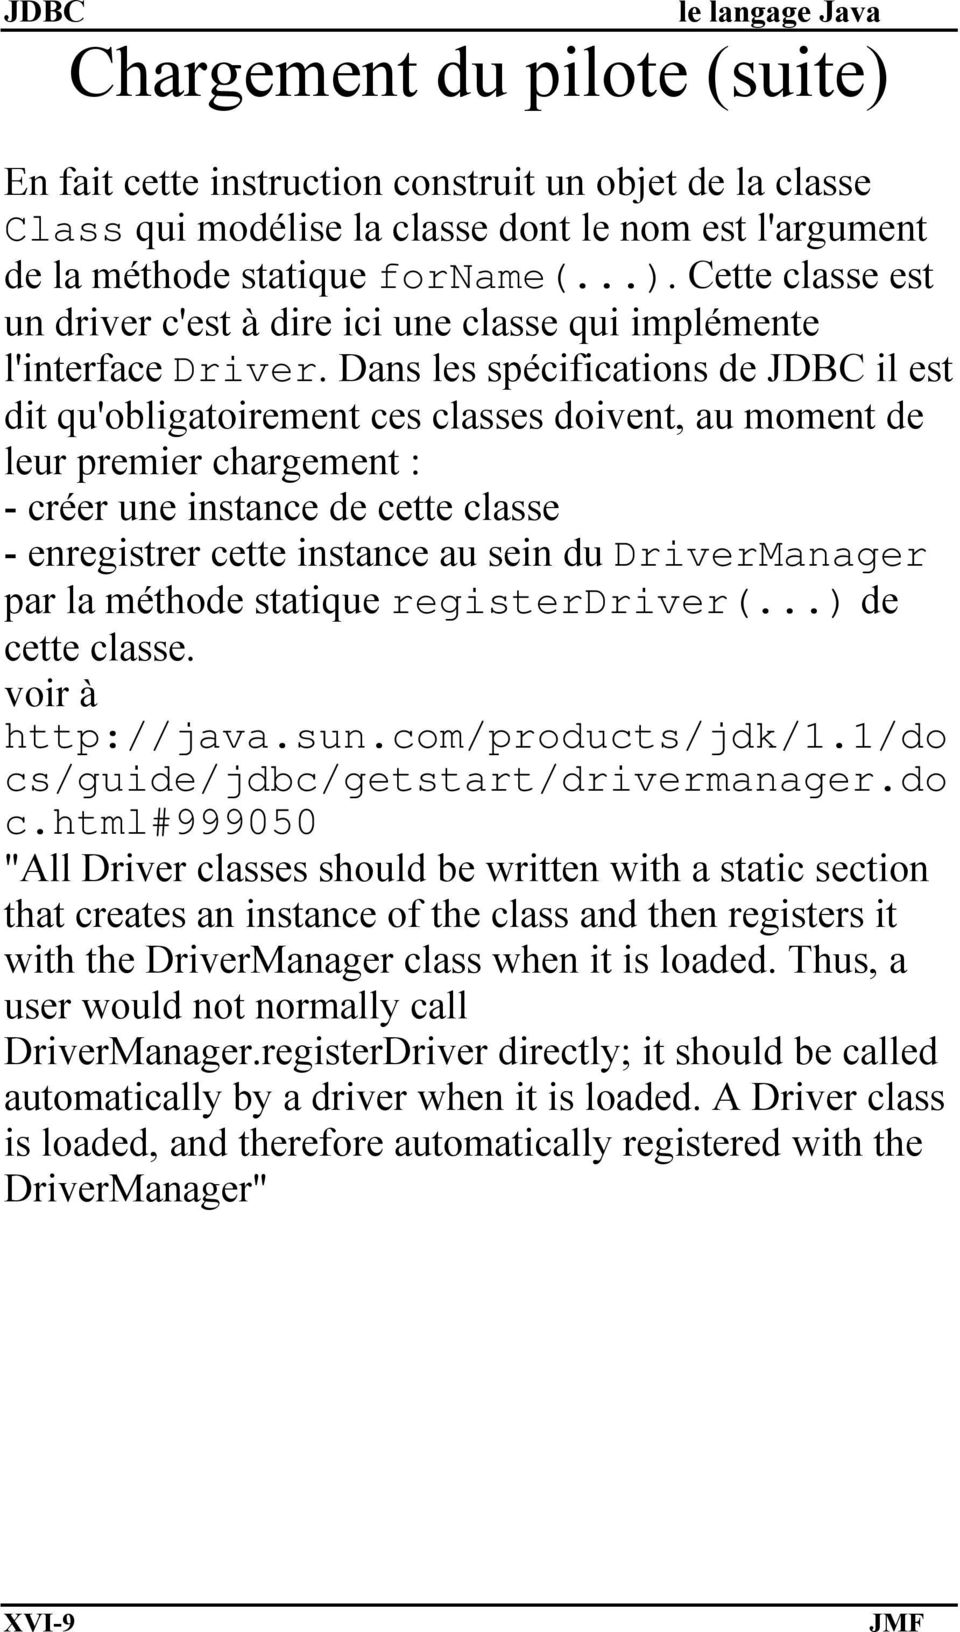 DriverManager par la méthode statique registerdriver(...) de cette classe. voir à http://java.sun.com/products/jdk/1.1/do cs